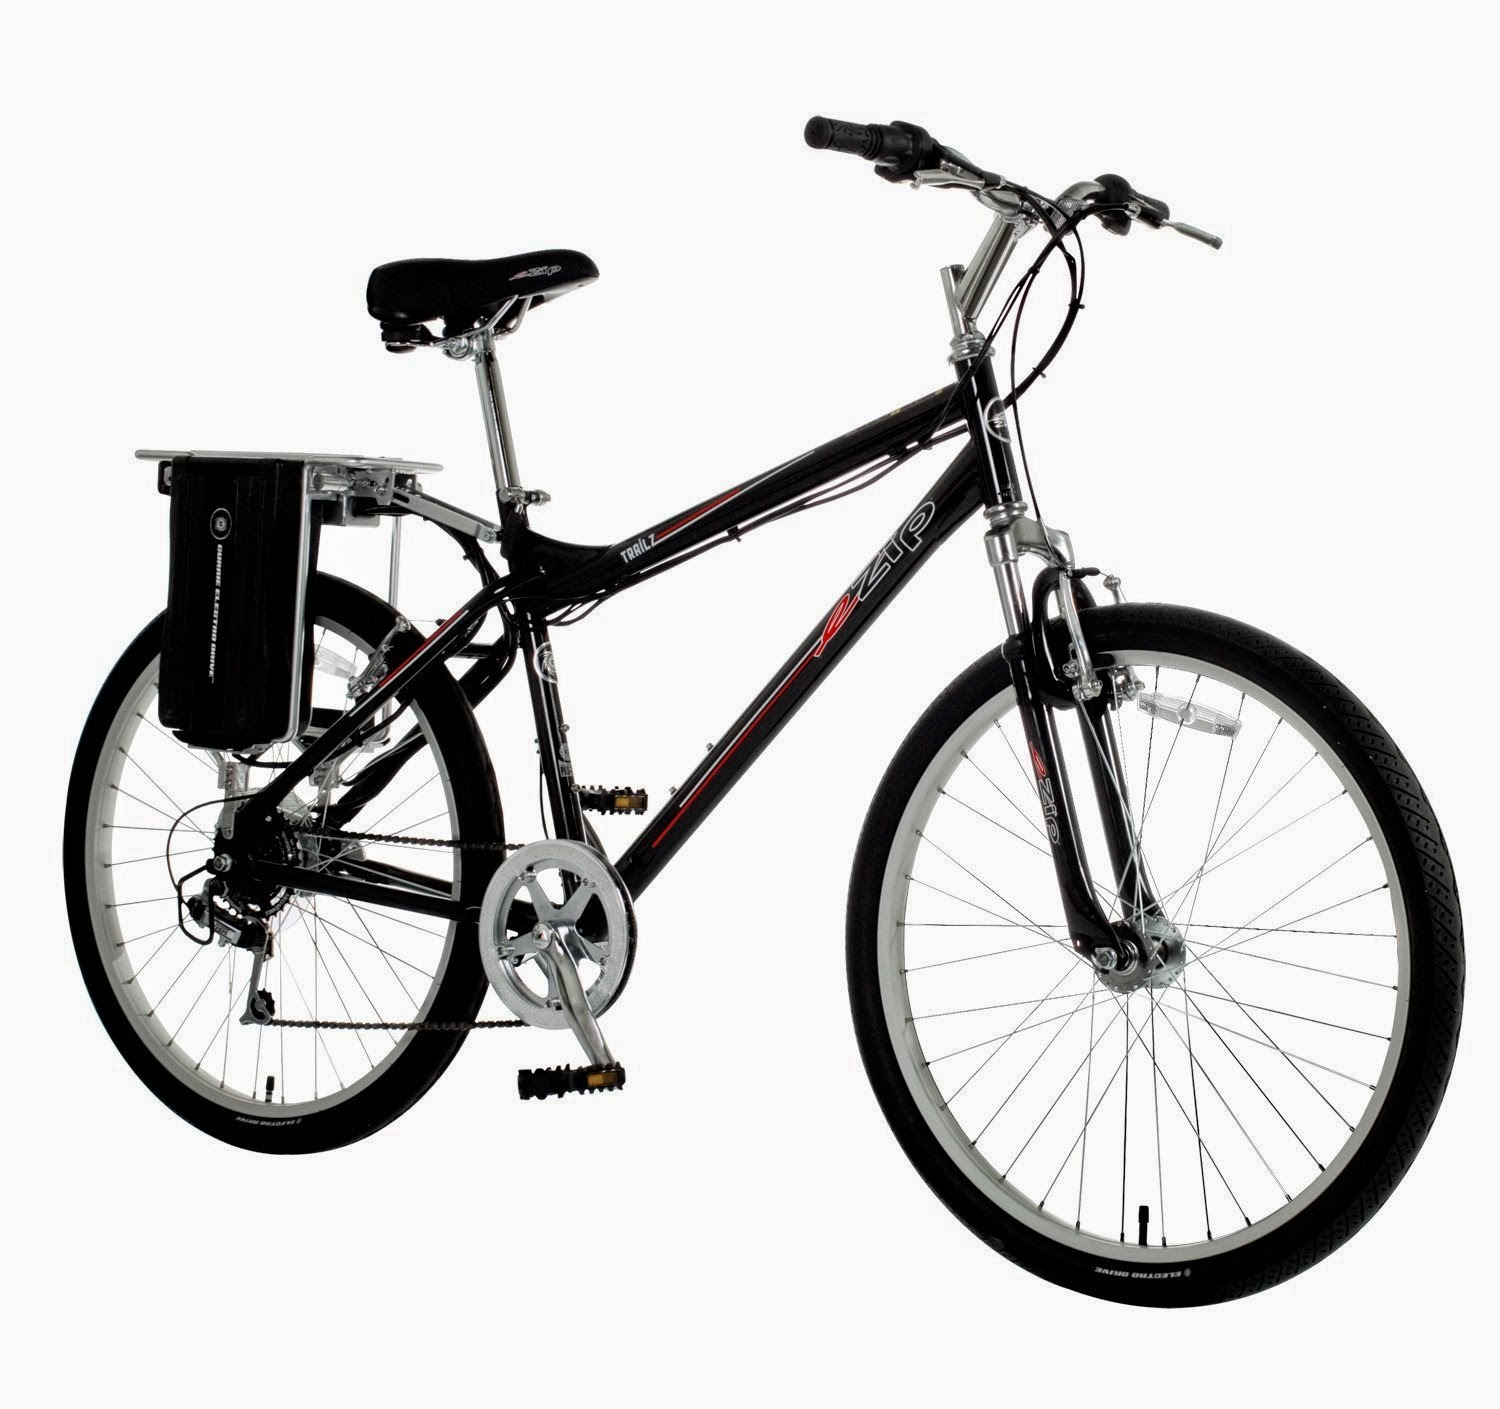 Currie Technologies eZip Men's Trailz Electric Bicycle, picture, review features & specifications